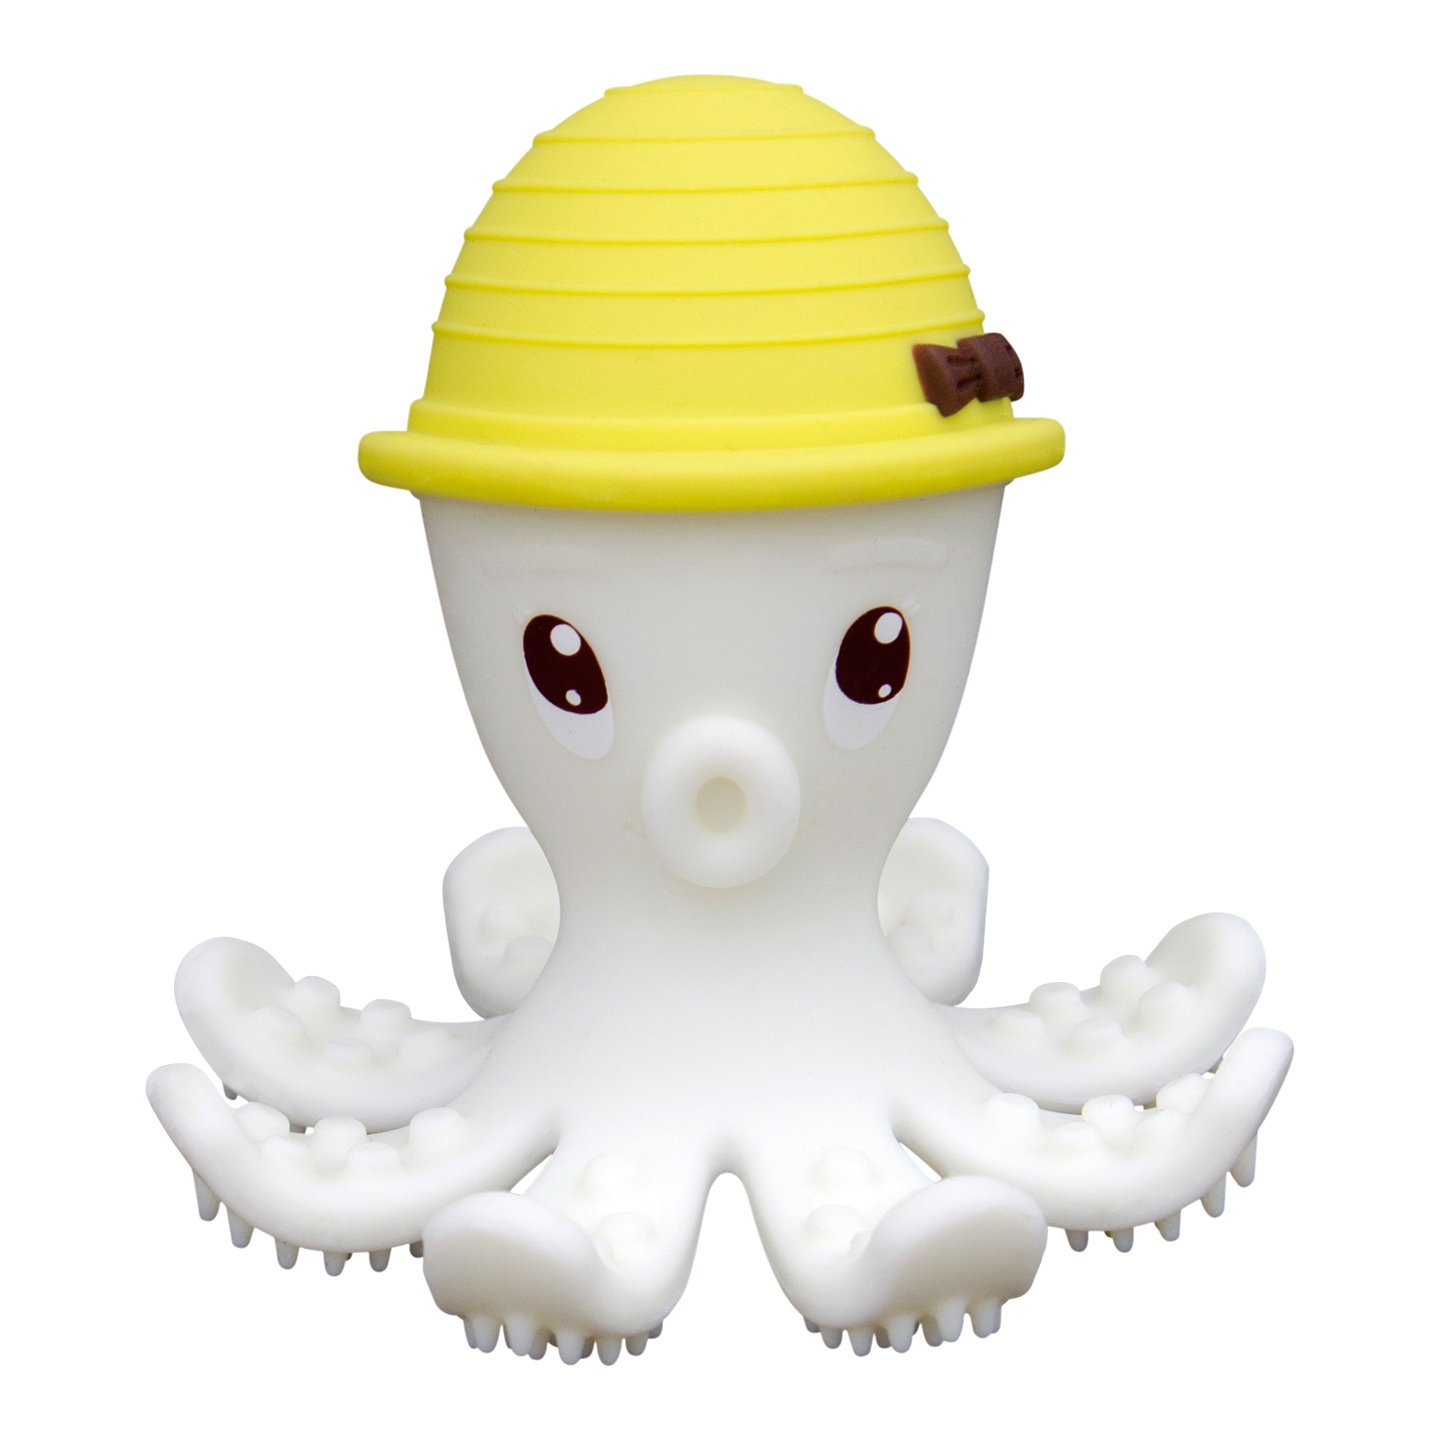 Toothbrush and Gum Massager Different Textures Stimulate Senses Sensory Bath Toy BPA Free Soft and Safe Silicone Baby Teether Toy Ltd 3 Months Dongguan Phushen Baby Products Co P8034 Mombella Ollie the Octopus